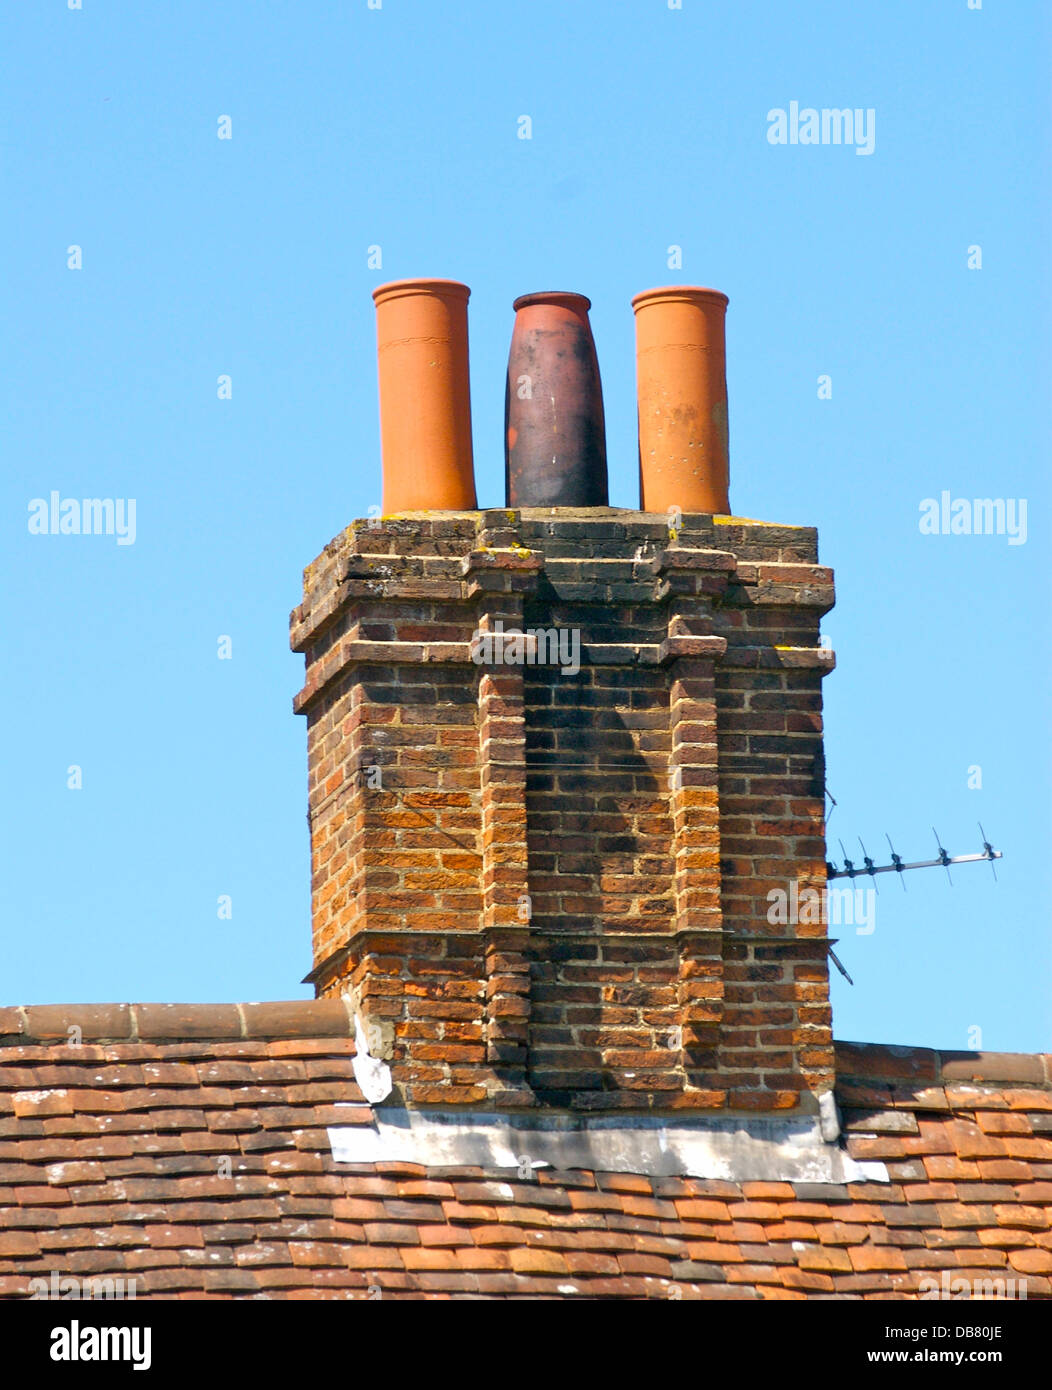 old chimney pots on a roof in uk stock photo: 58568454 - alamy